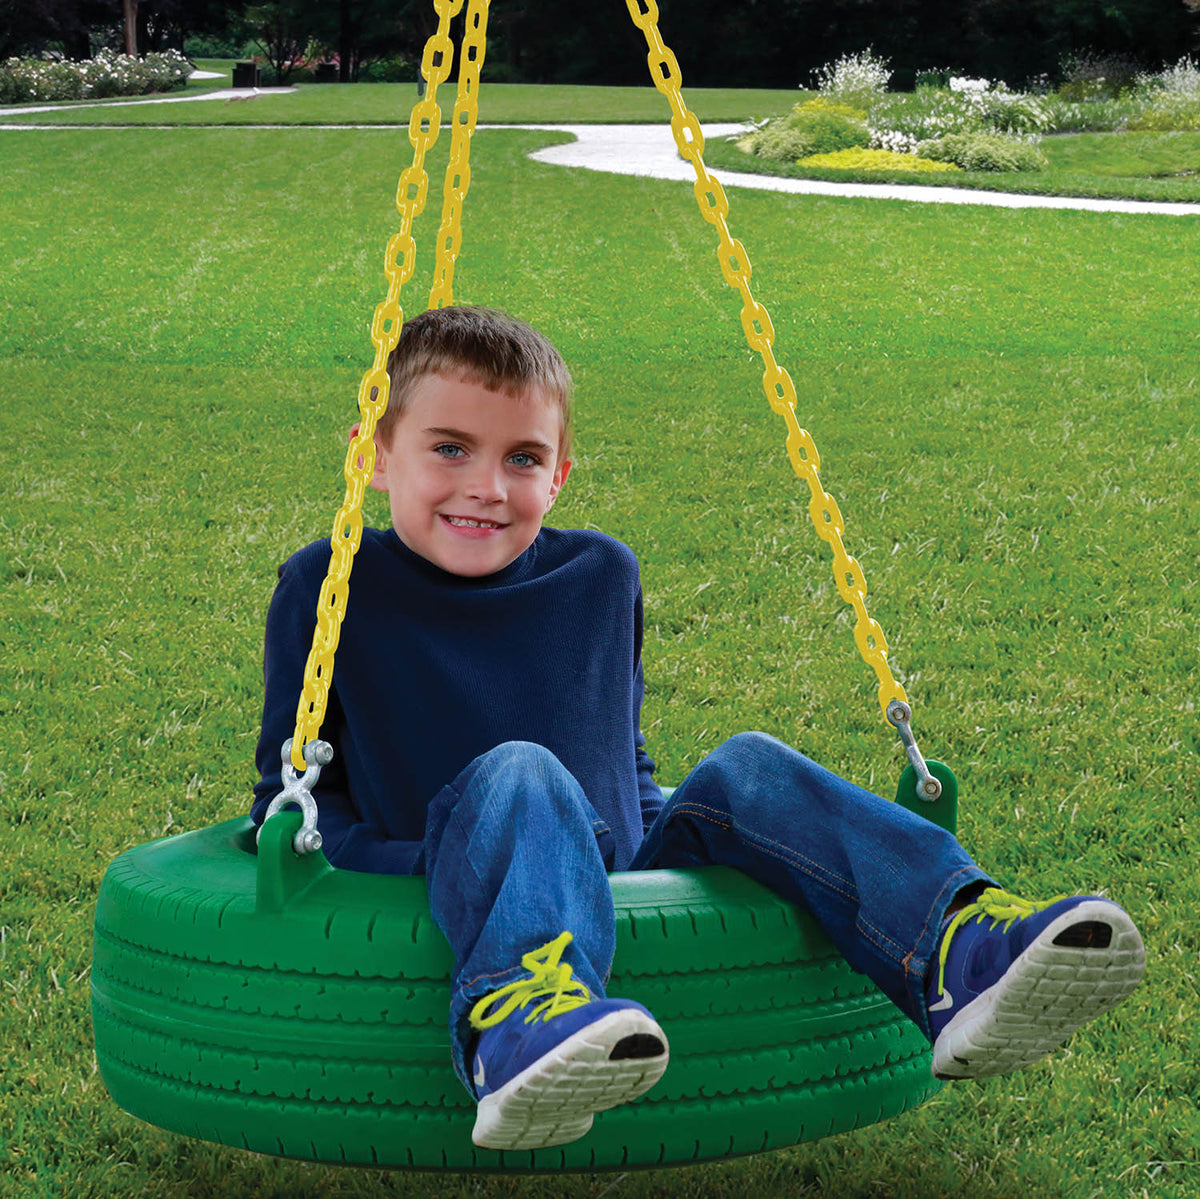 Gorilla-Playsets-Pioneer-Peak-Deluxe-Wooden-Swingset-Tire-Swing